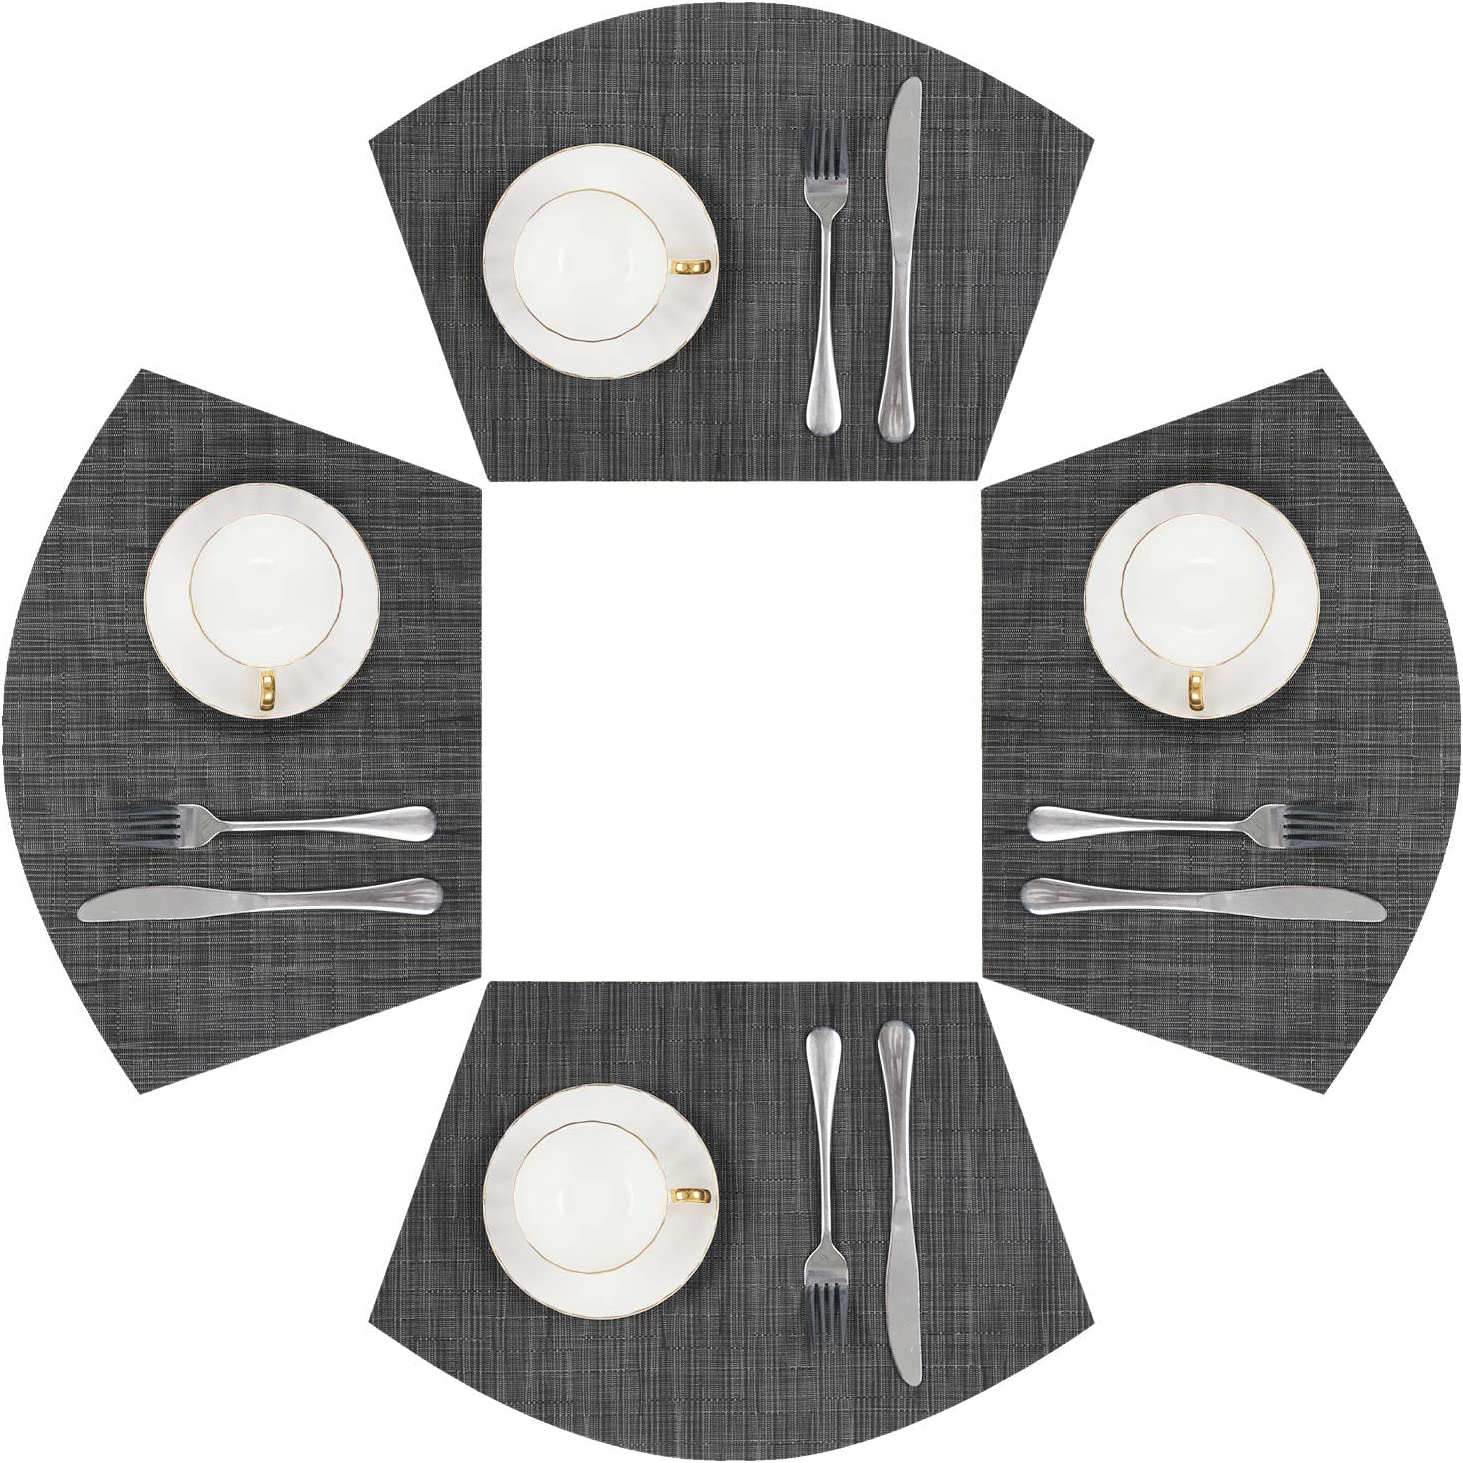 SHACOS Round Table Placemats Set of 4 Wedge Placemats Heat Resistant Round Table Mats Wipe Clean (4, Bamboo Tan): Home & Kitchen